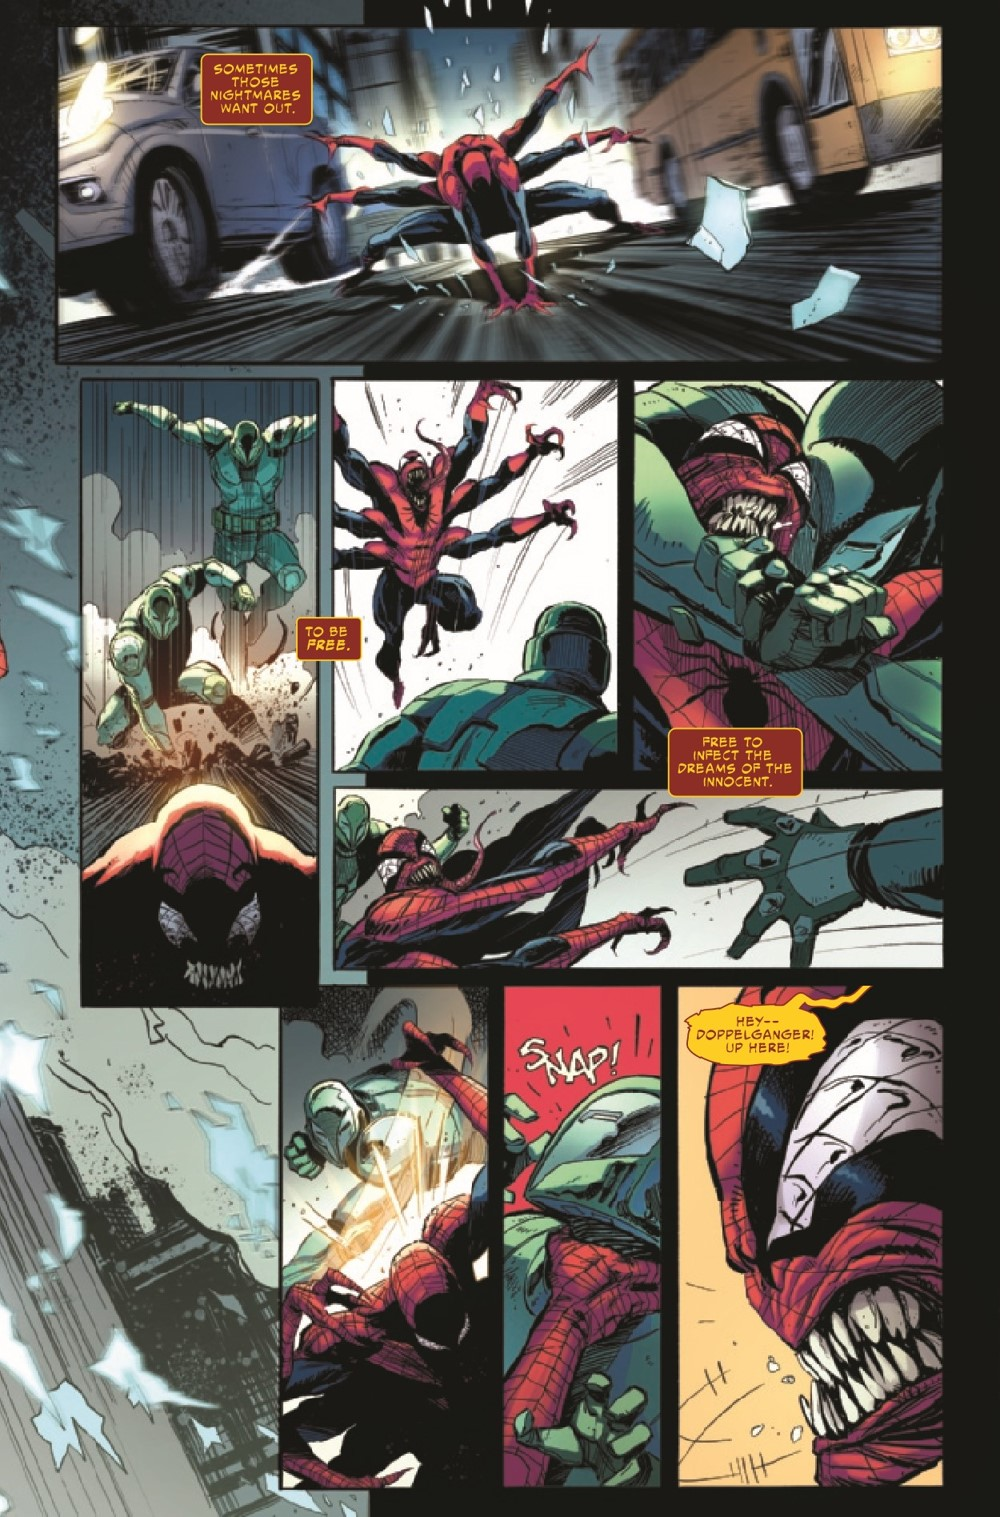 EXTCARNSC2021001_Preview-5 ComicList Previews: EXTREME CARNAGE SCREAM #1